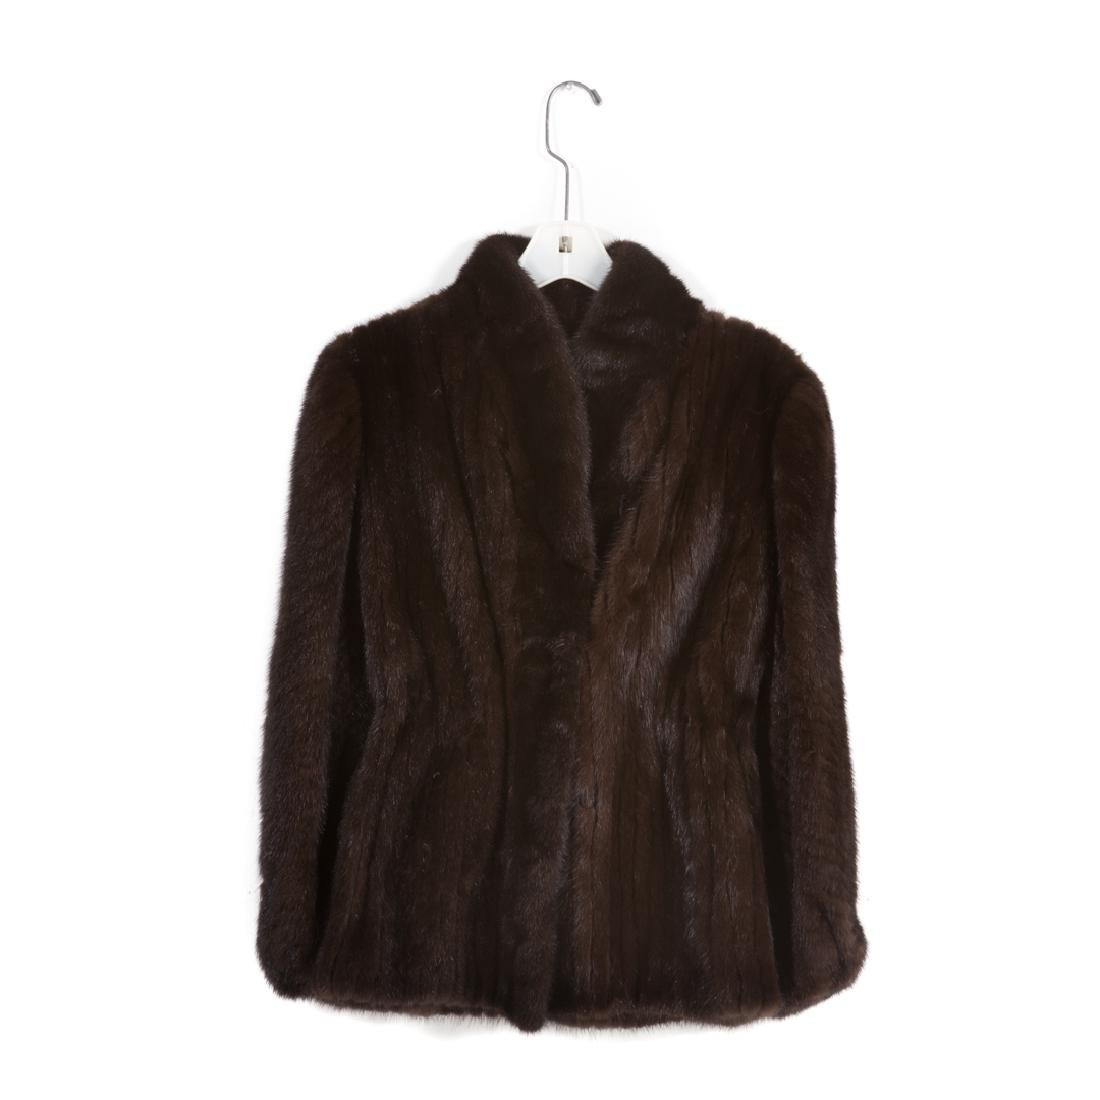 A Lady's Chocolate Brown Mink Jacket